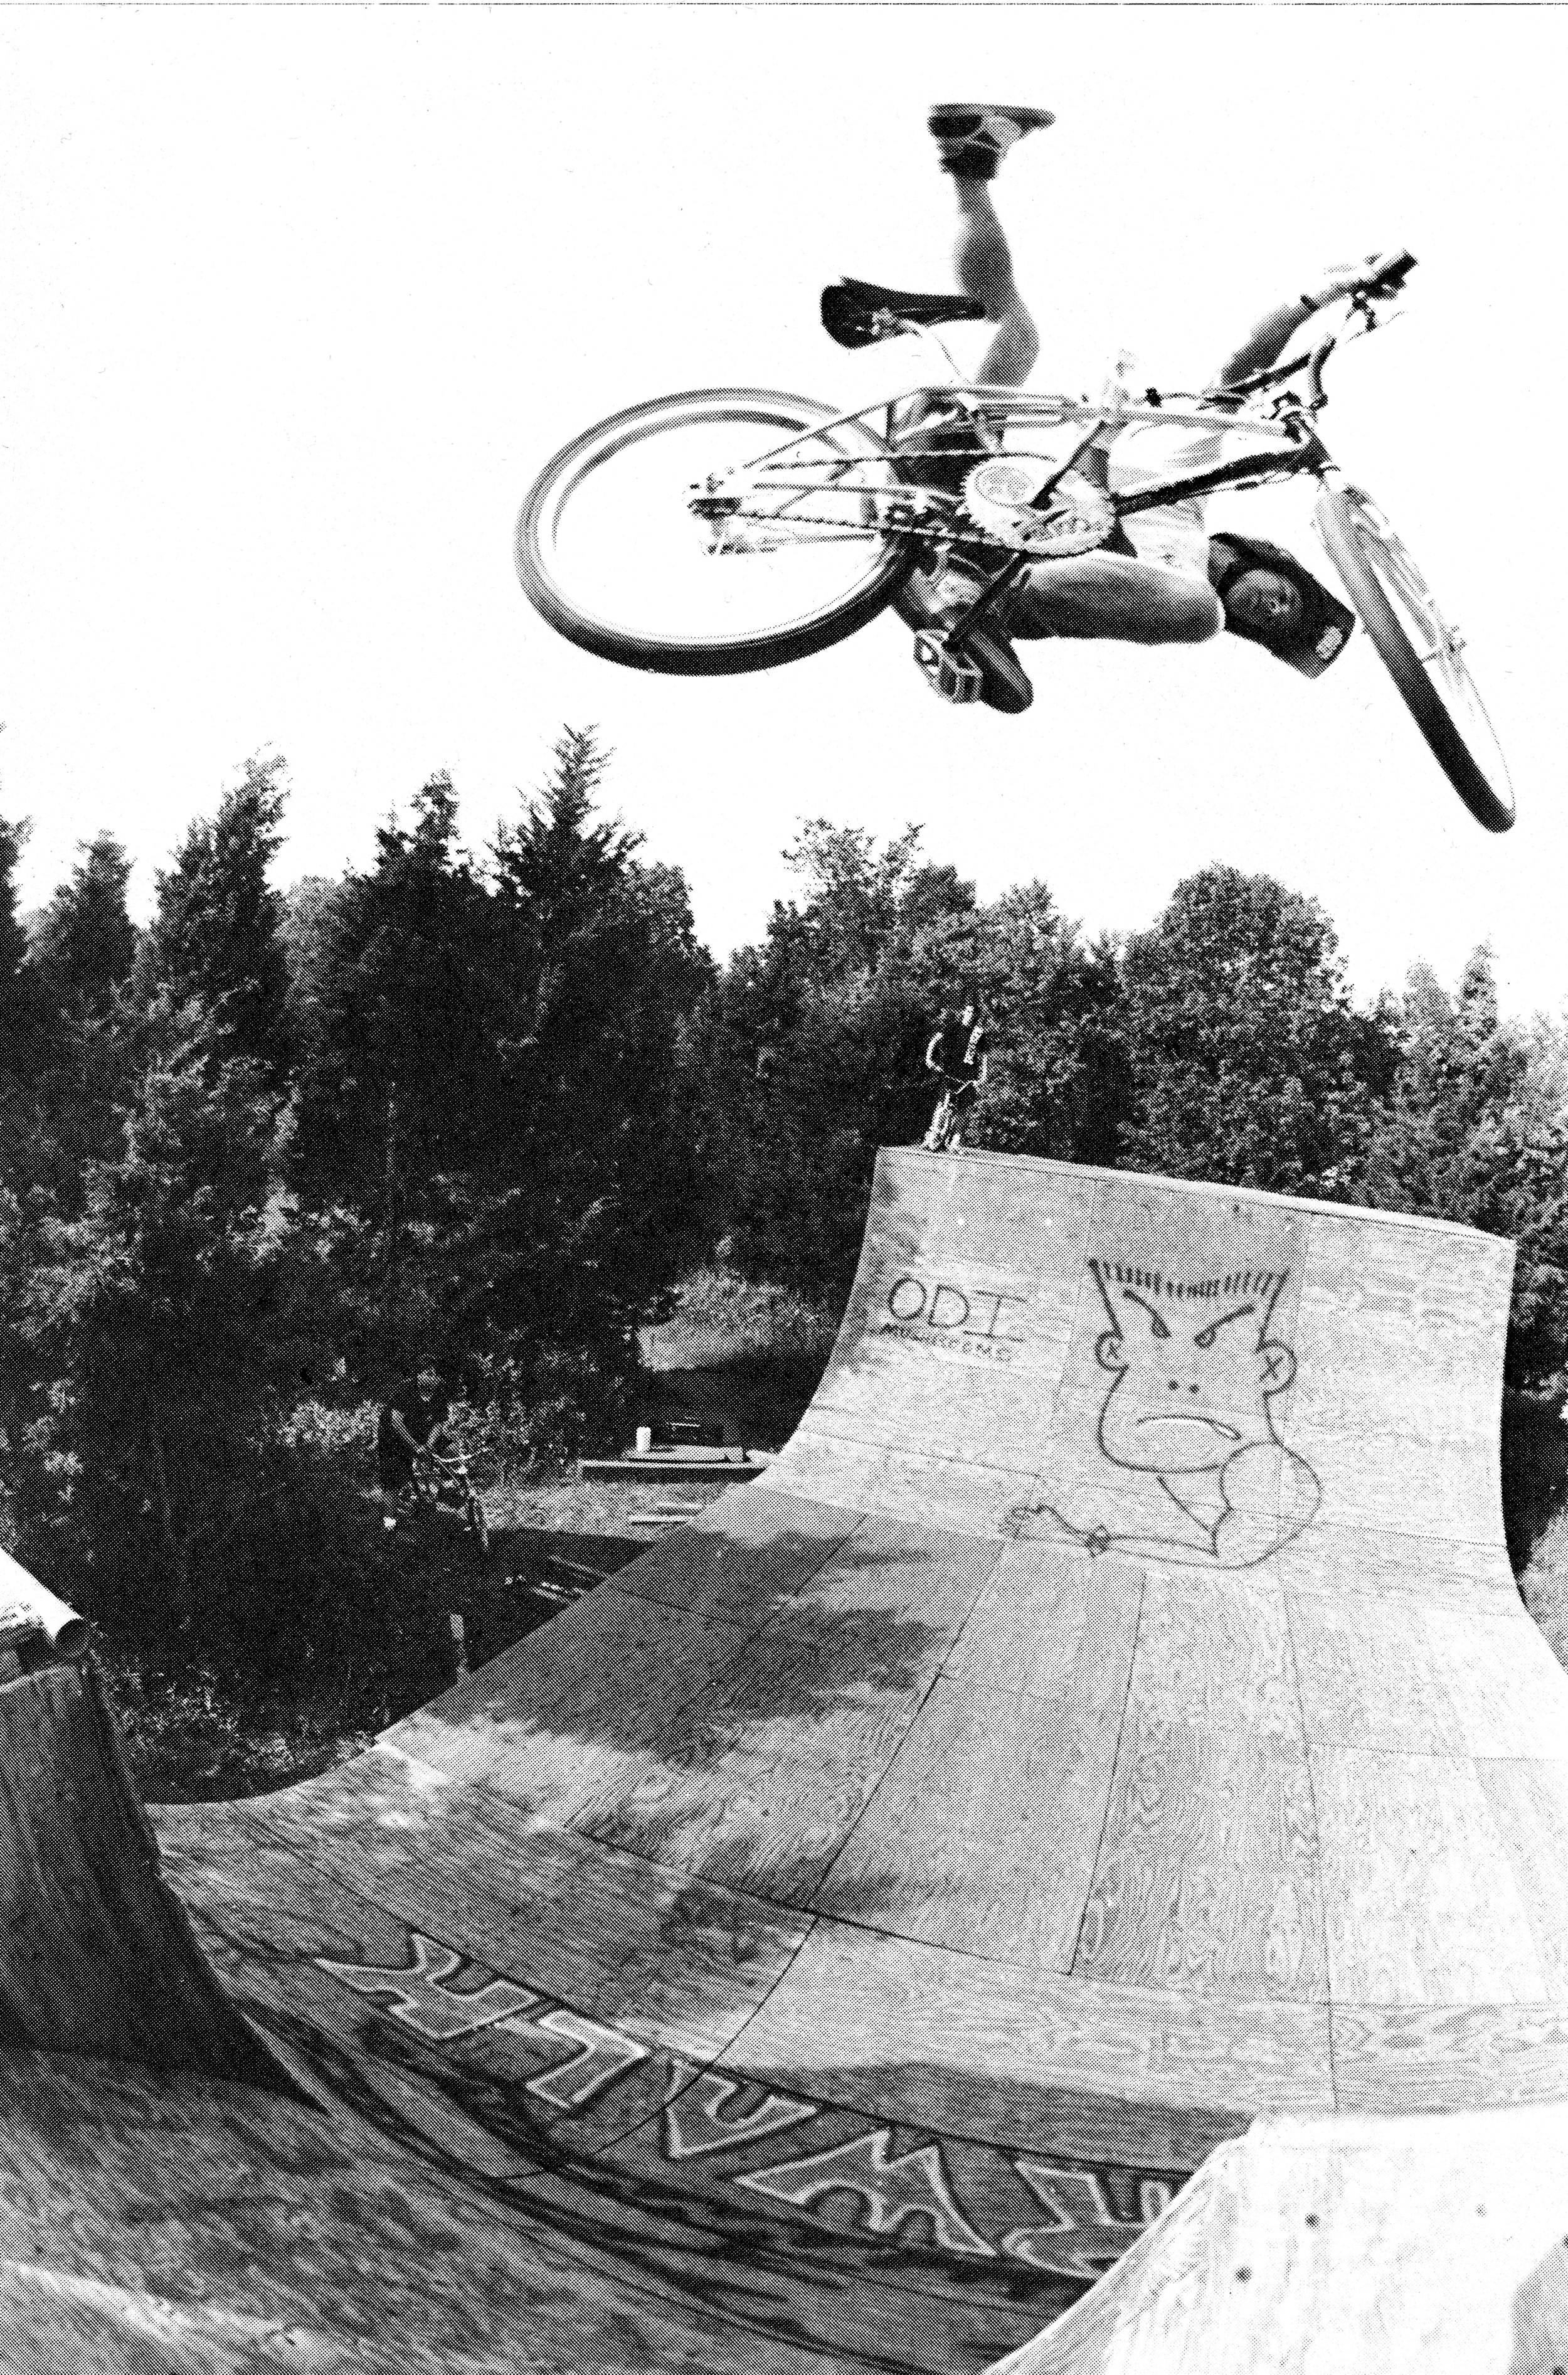 Jeff Mayer - Jeff rode Pro Vert back in the late 80's, early 90's and his specialty was vert and trail riding. He has over 25 years experience and can be booked for private BMX Sessions this summer!